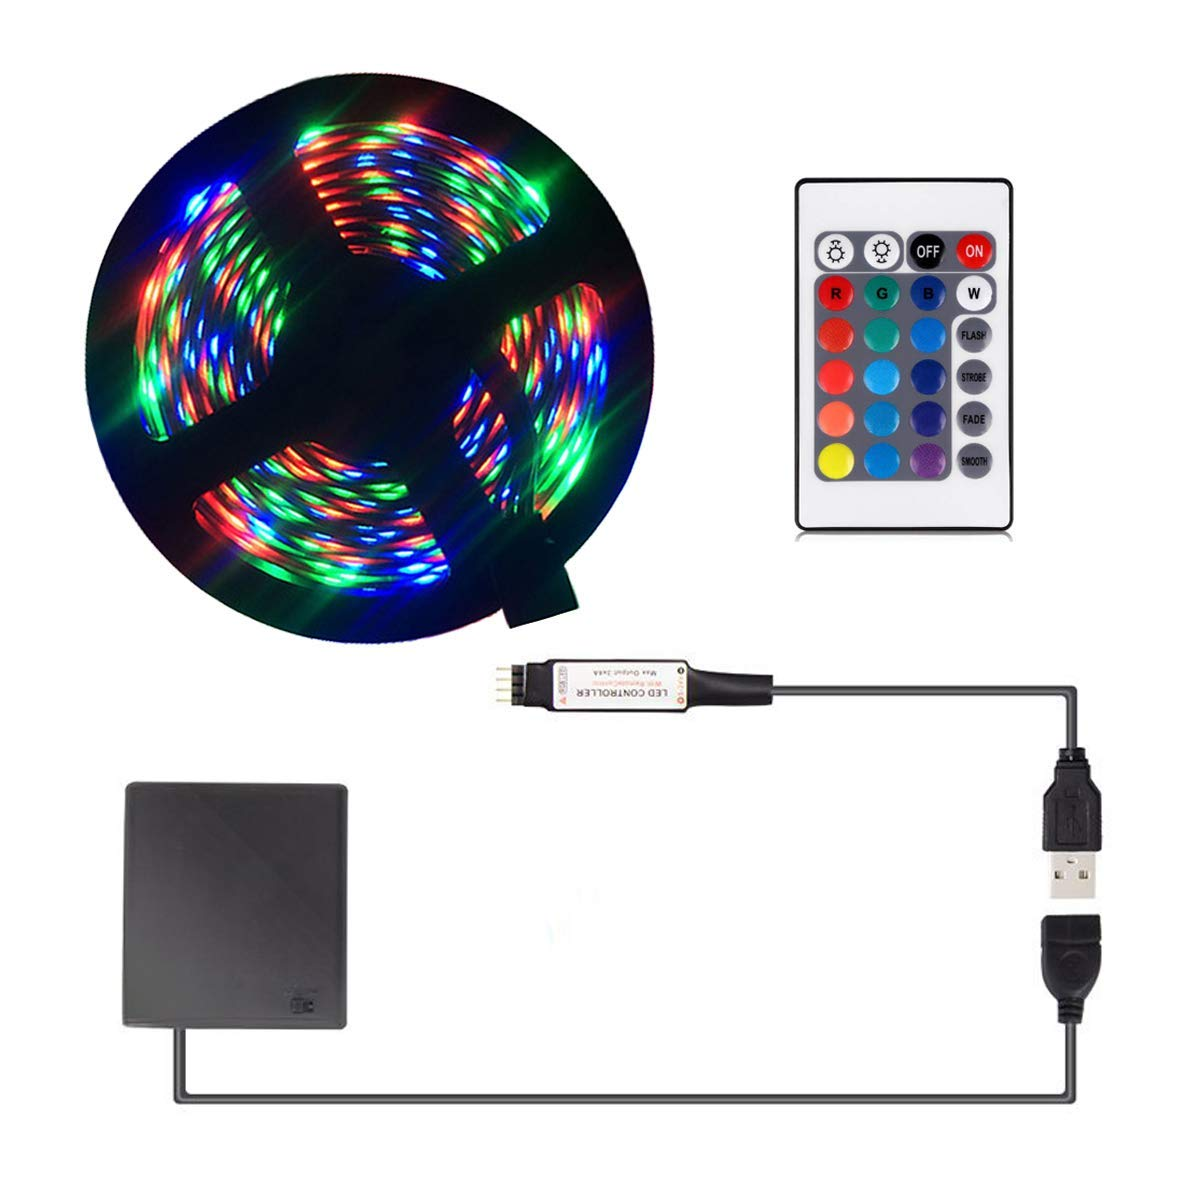 Battery Powered LED Strip Lights, USB LED Strip Lights, LED Strip Lights Battery Powered USB Operated 2 in 1, 5050 60 LEDs RGB 24keys-2M/6.6FT